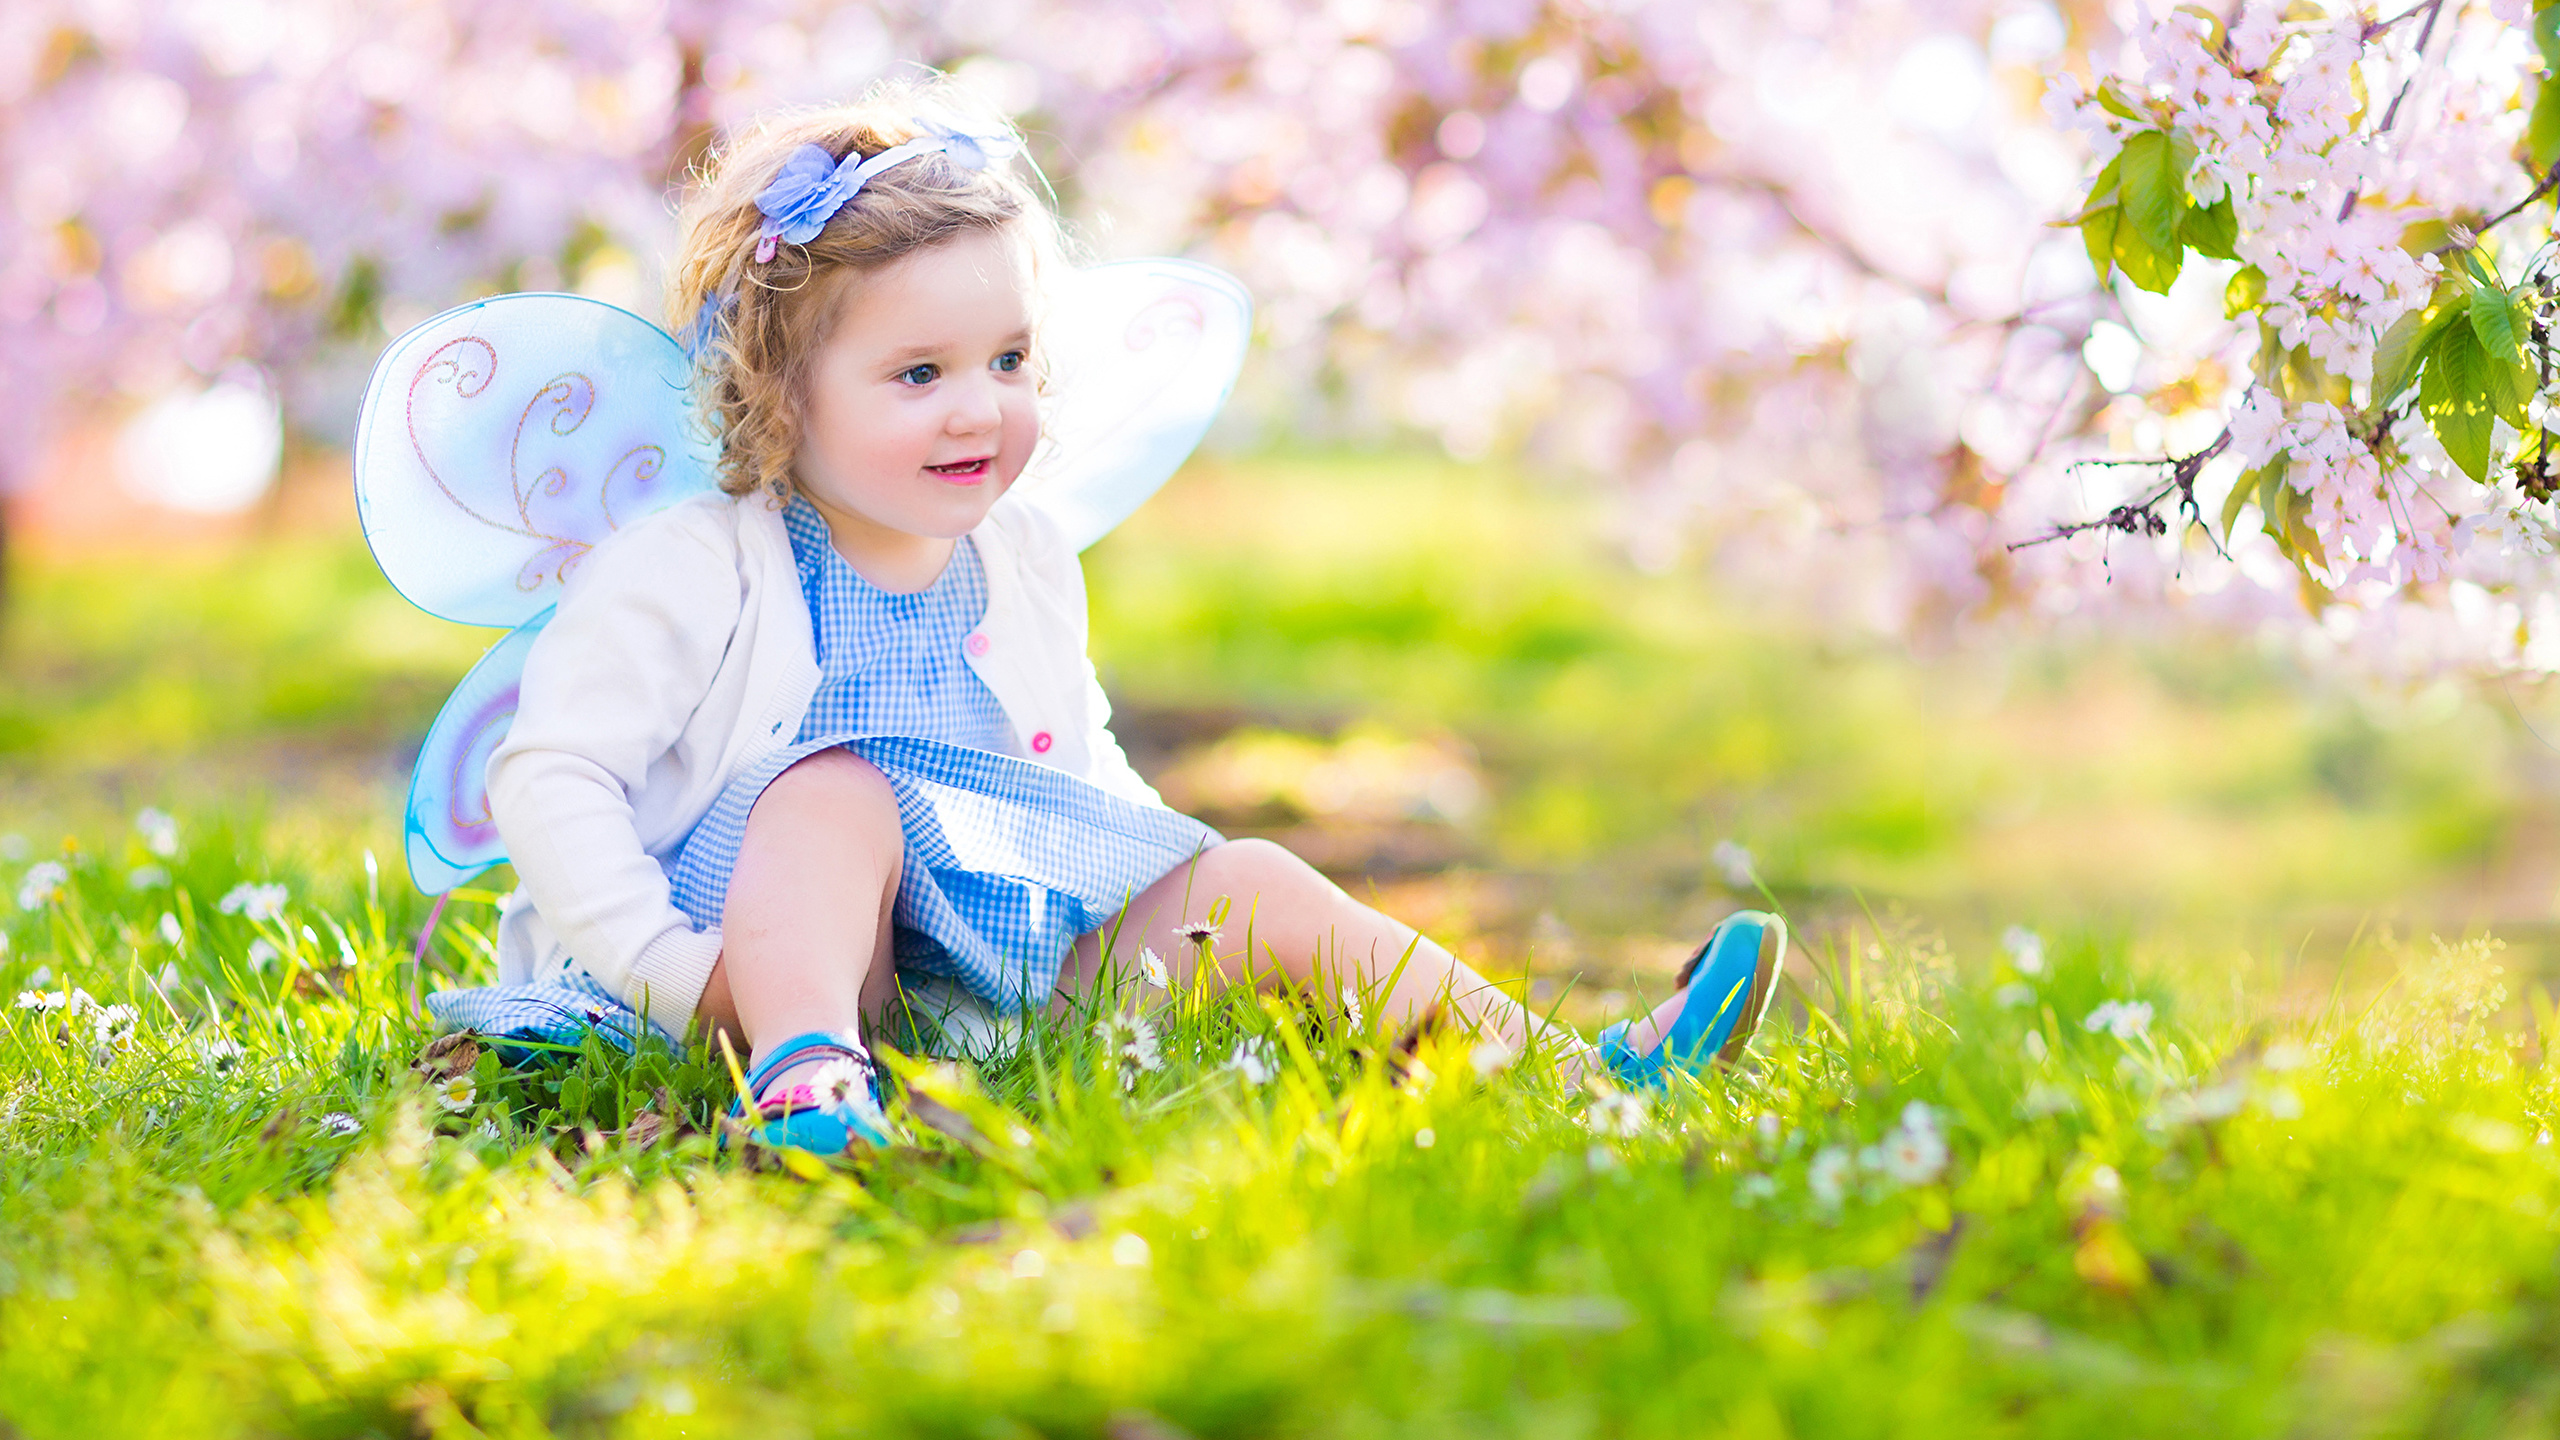 butterflies_spring_fairies_little_girls_sitting_524944_2560x1440